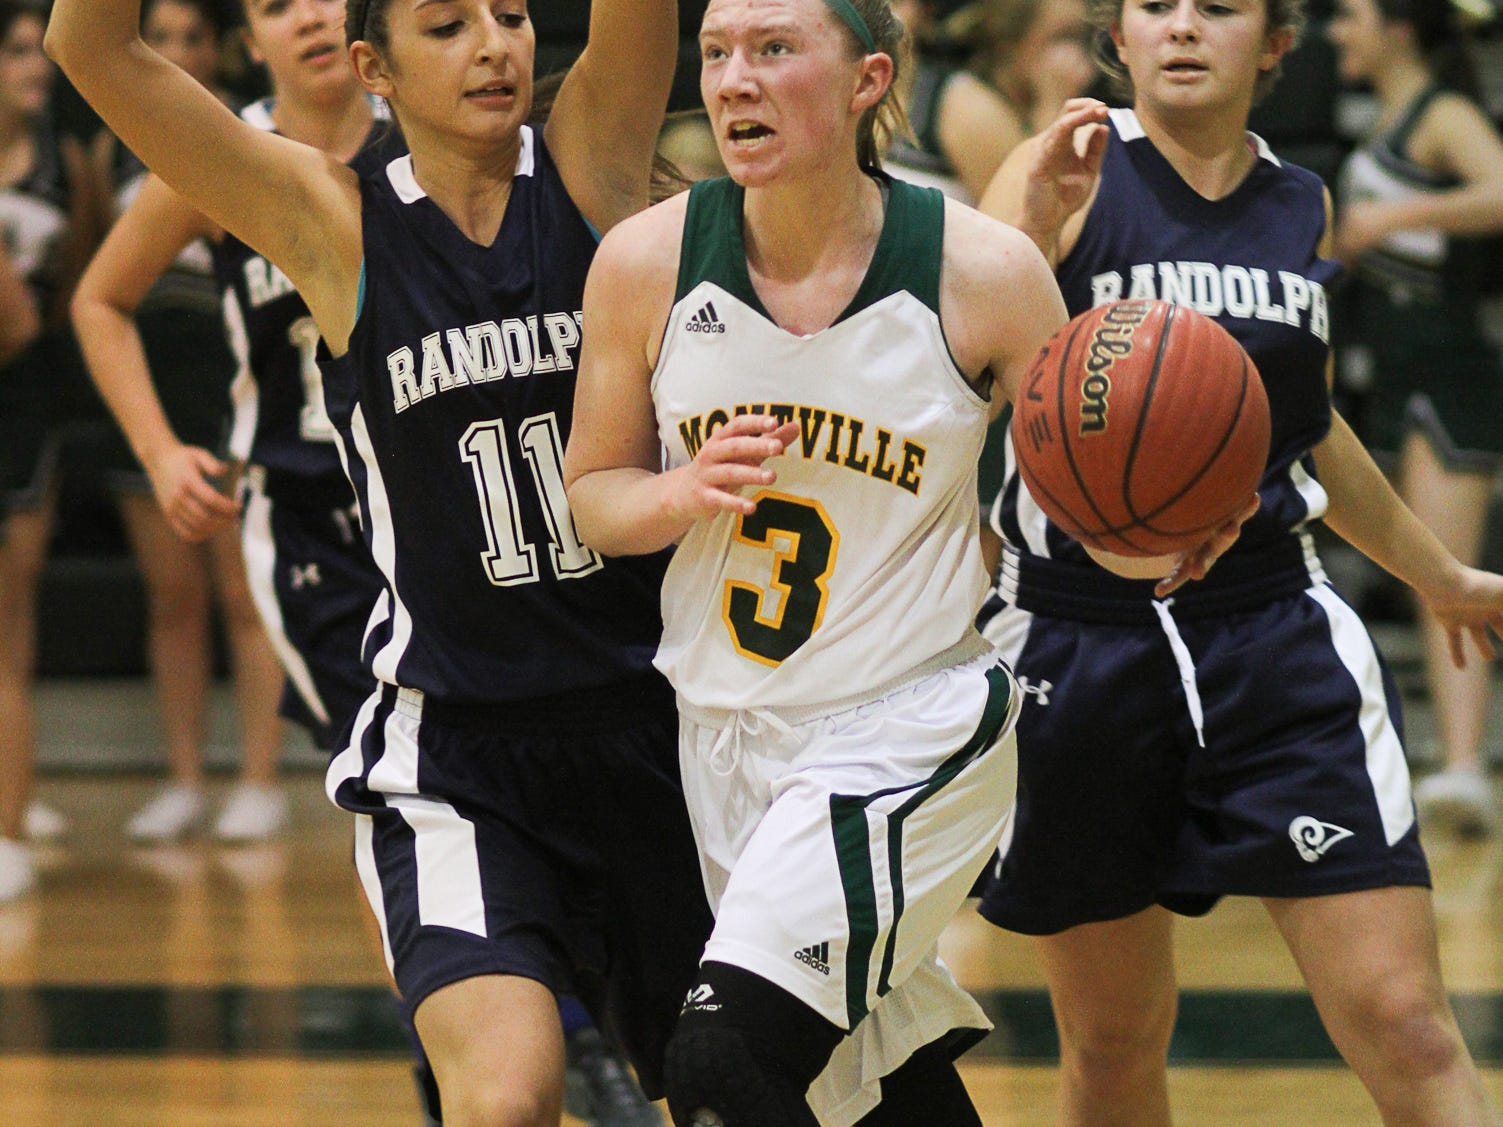 Keith A. Muccilli/CorrespondentMontville's Kelly O'Reilly (3) drives to the basket against Randolph's Jenni LaMancuso (11) during Tuesday's game. Montville's Kelly O'Reilly (3) goes to the hoop covered by Randolph's Jenni LaMancuso (11) in Montville on February 3, 2015. (Photo by Keith A. Muccilli/ Special to NJ Press Media)